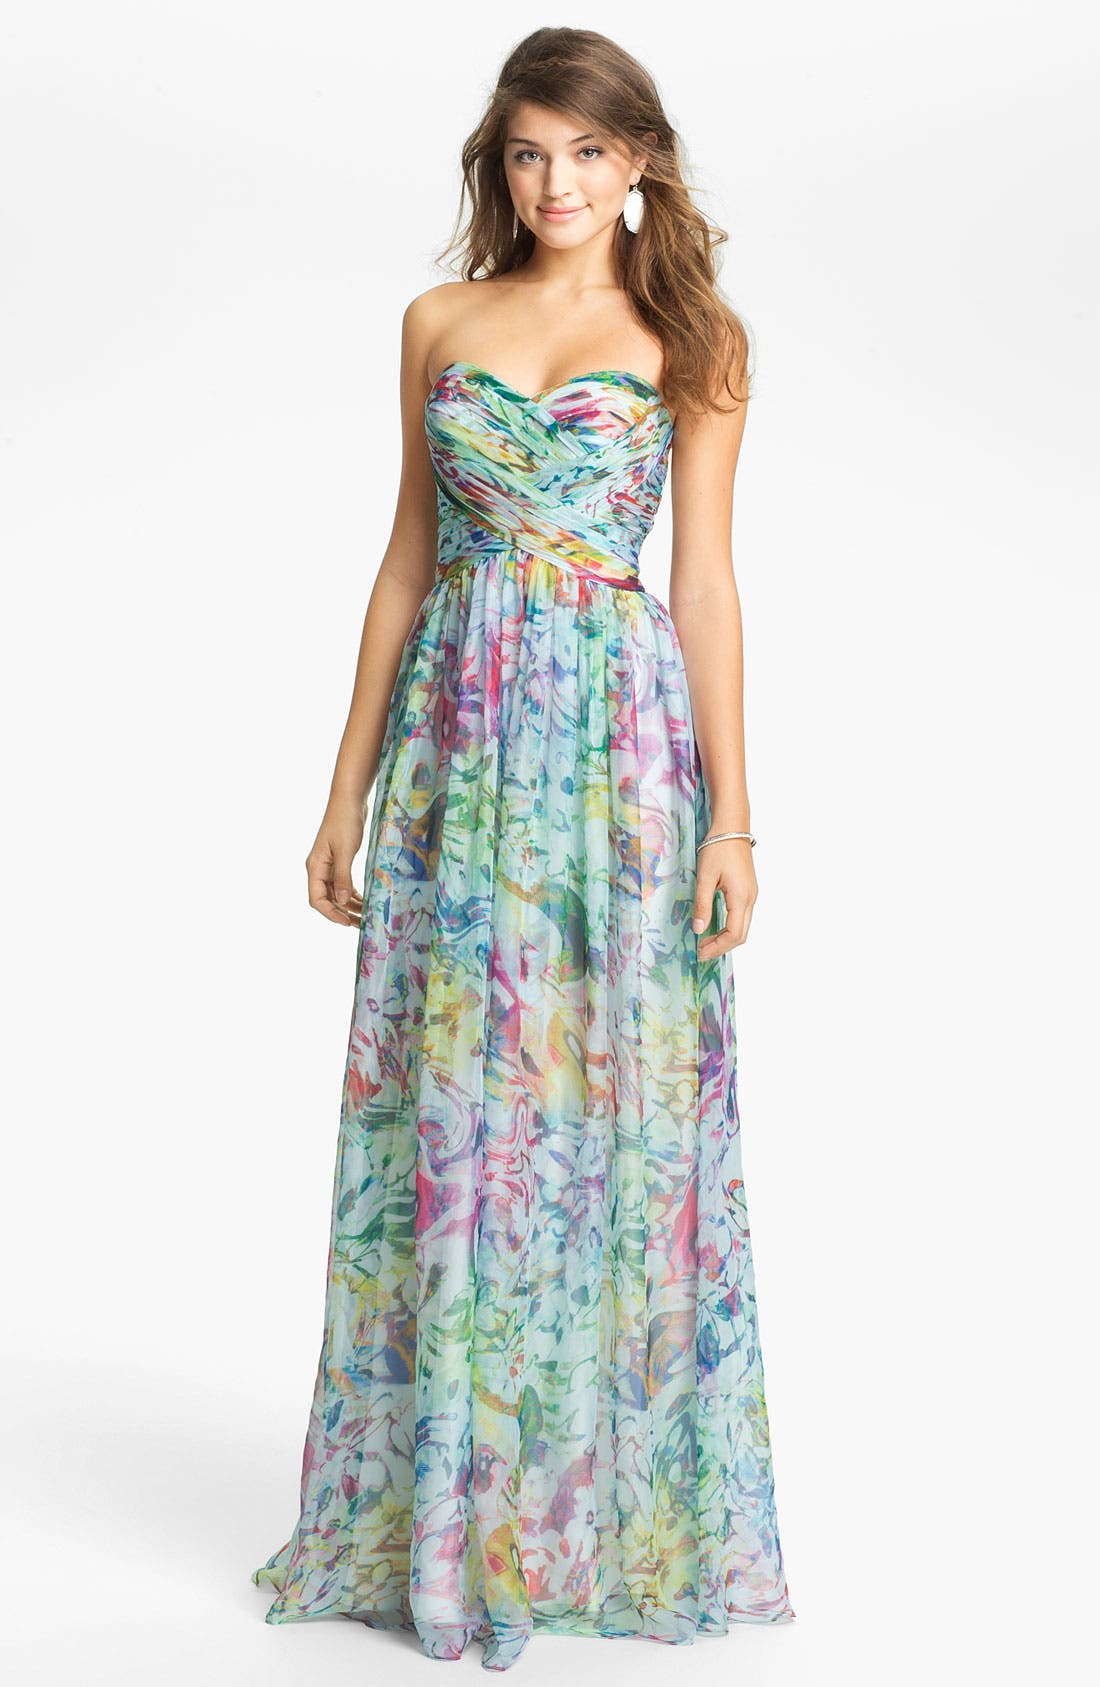 Alternate Image 1 Selected - La Femme Print Strapless Maxi Dress